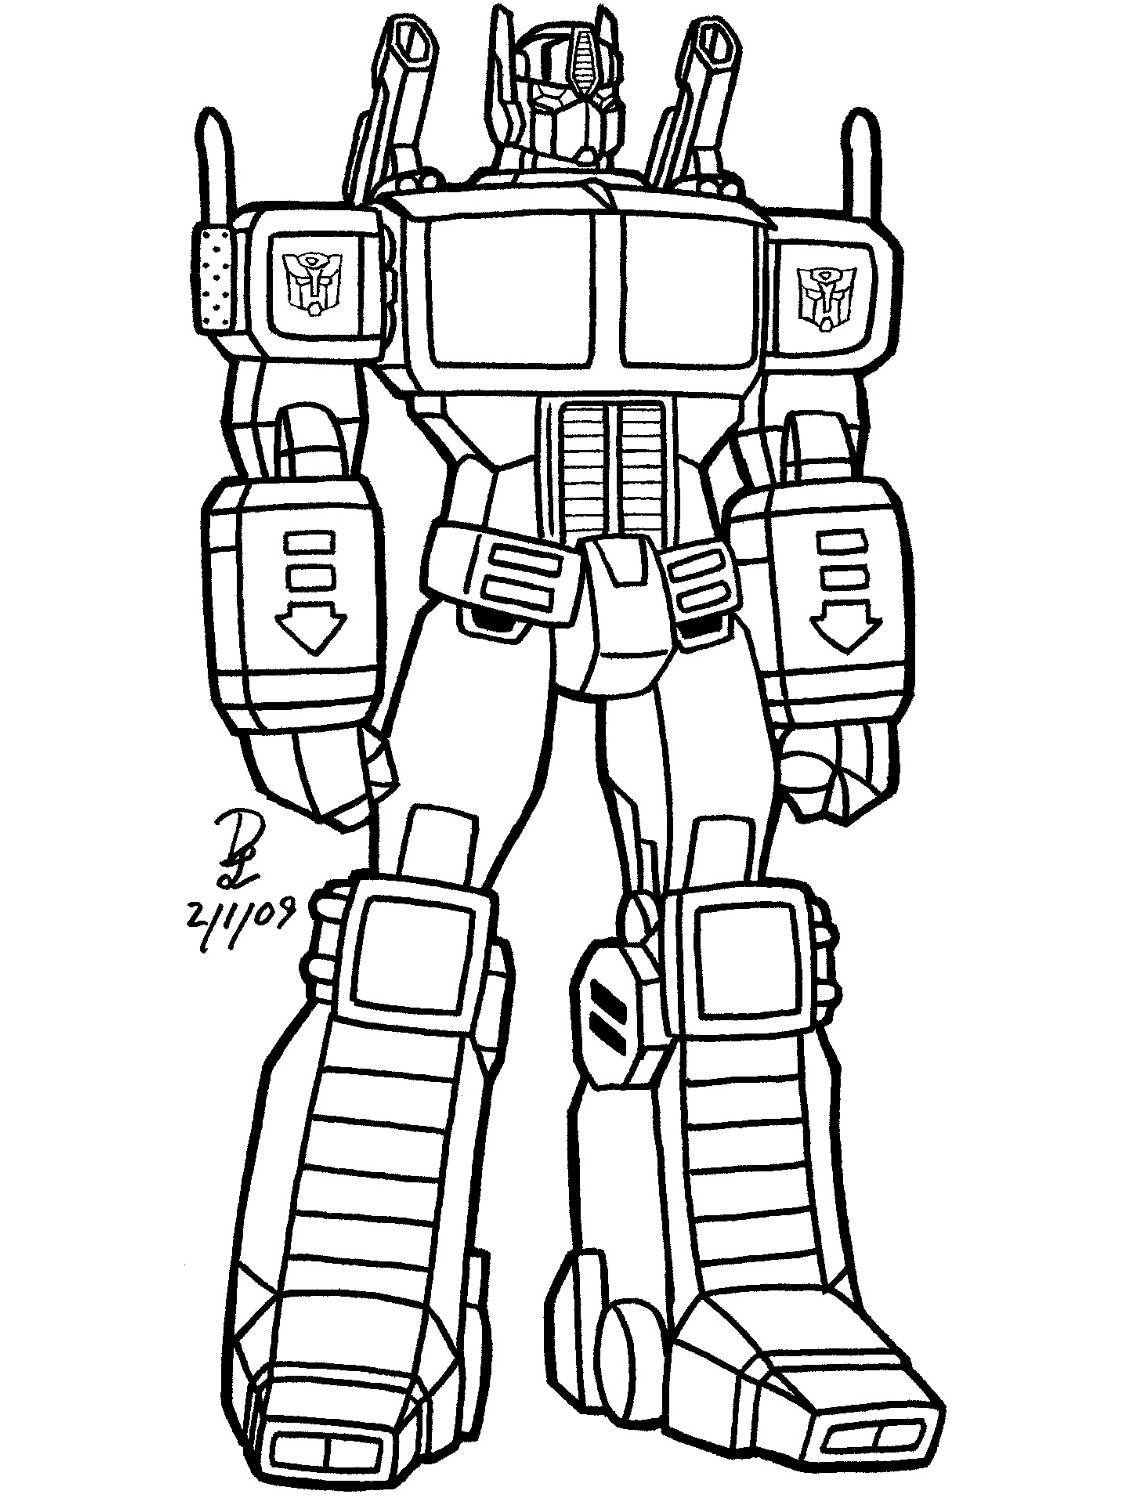 Transformers (Superheroes) - Printable coloring pages